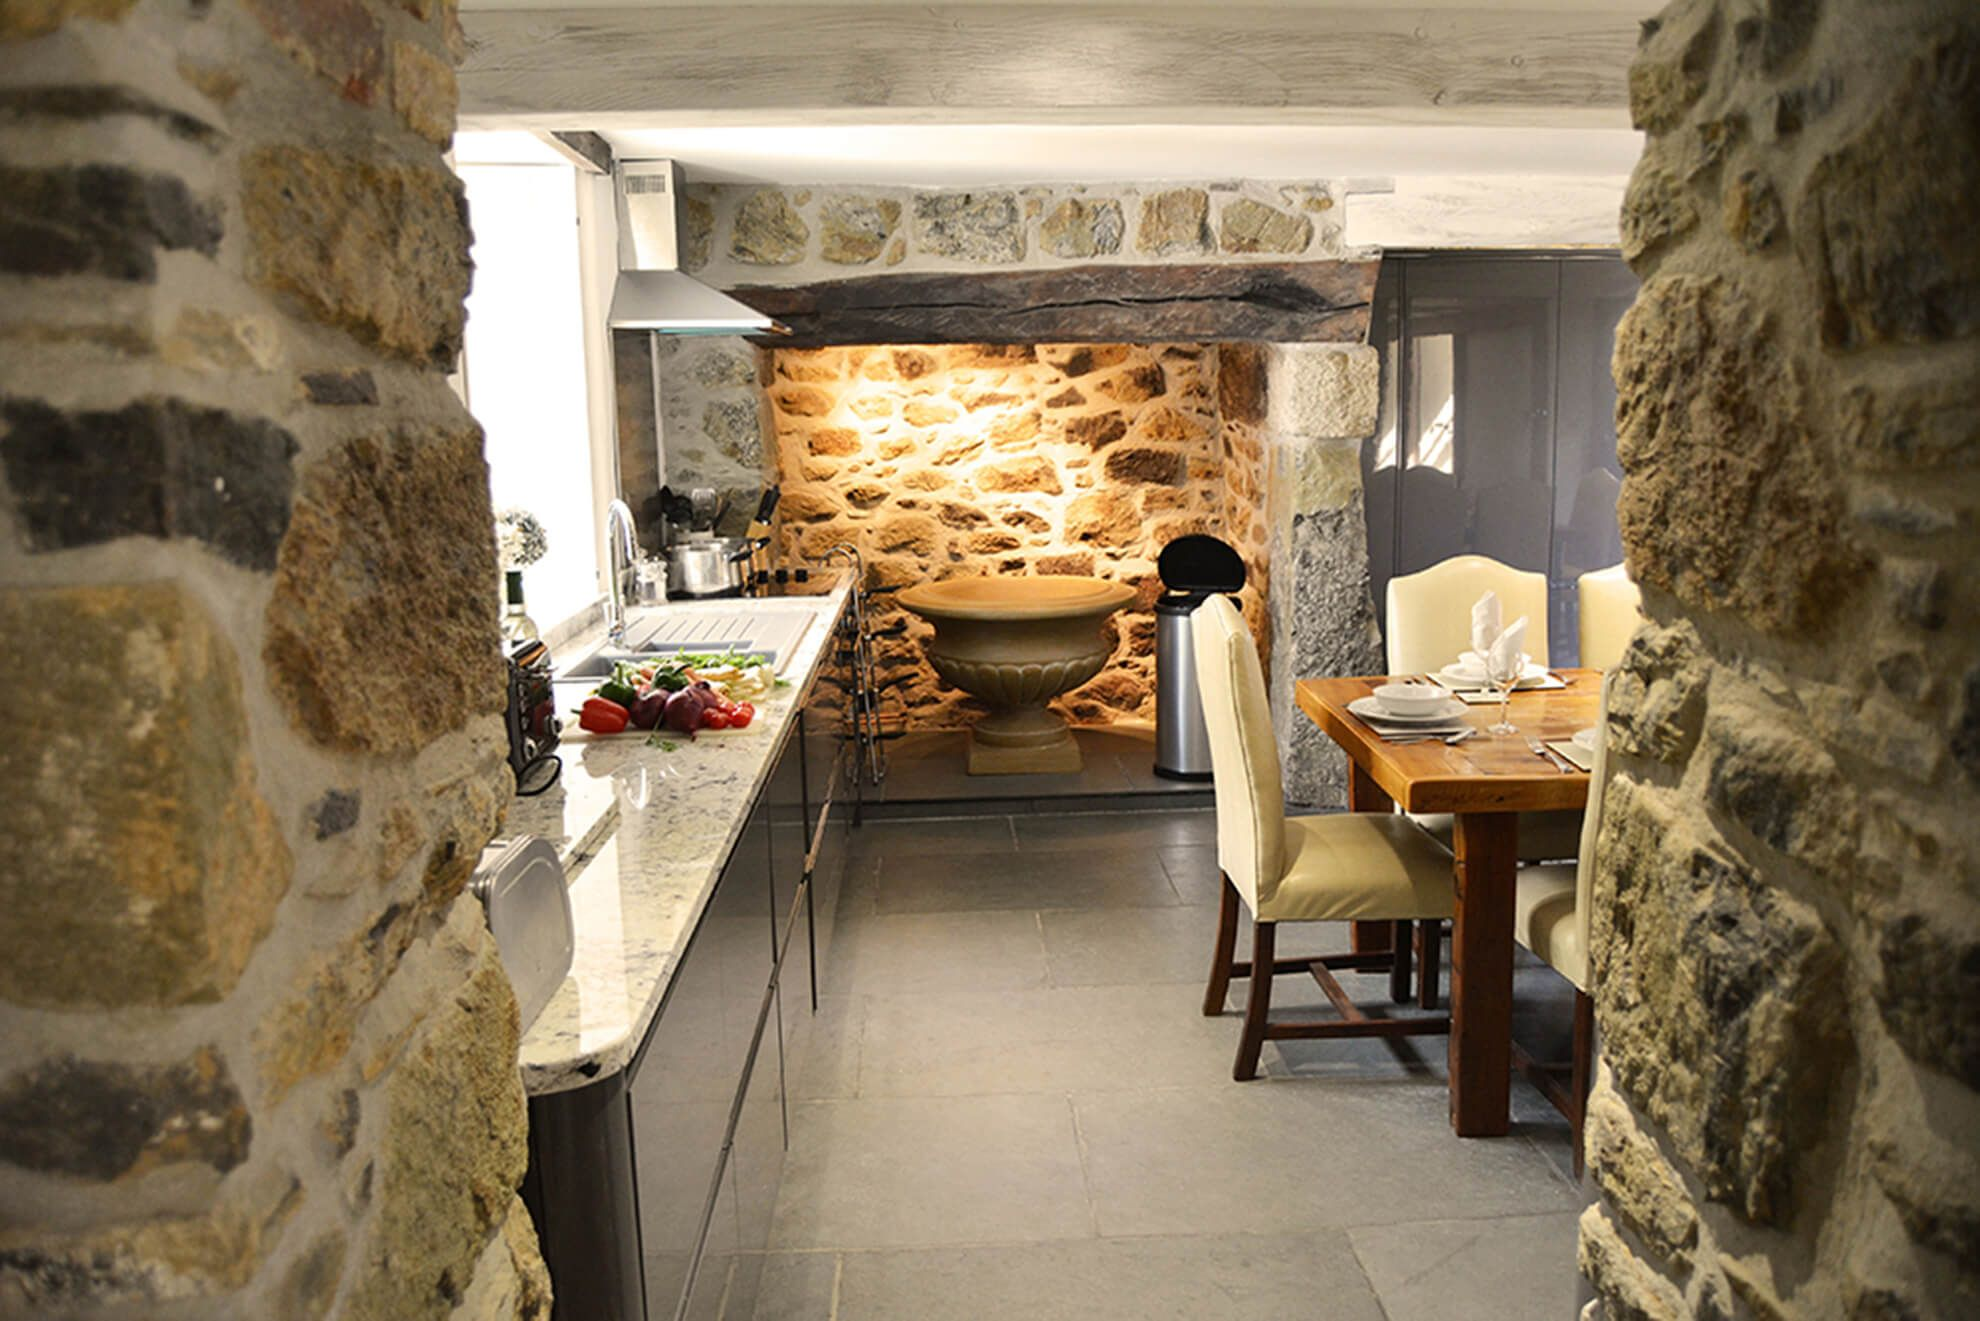 Ground floor: Kitchen through to dining room with original fireplace